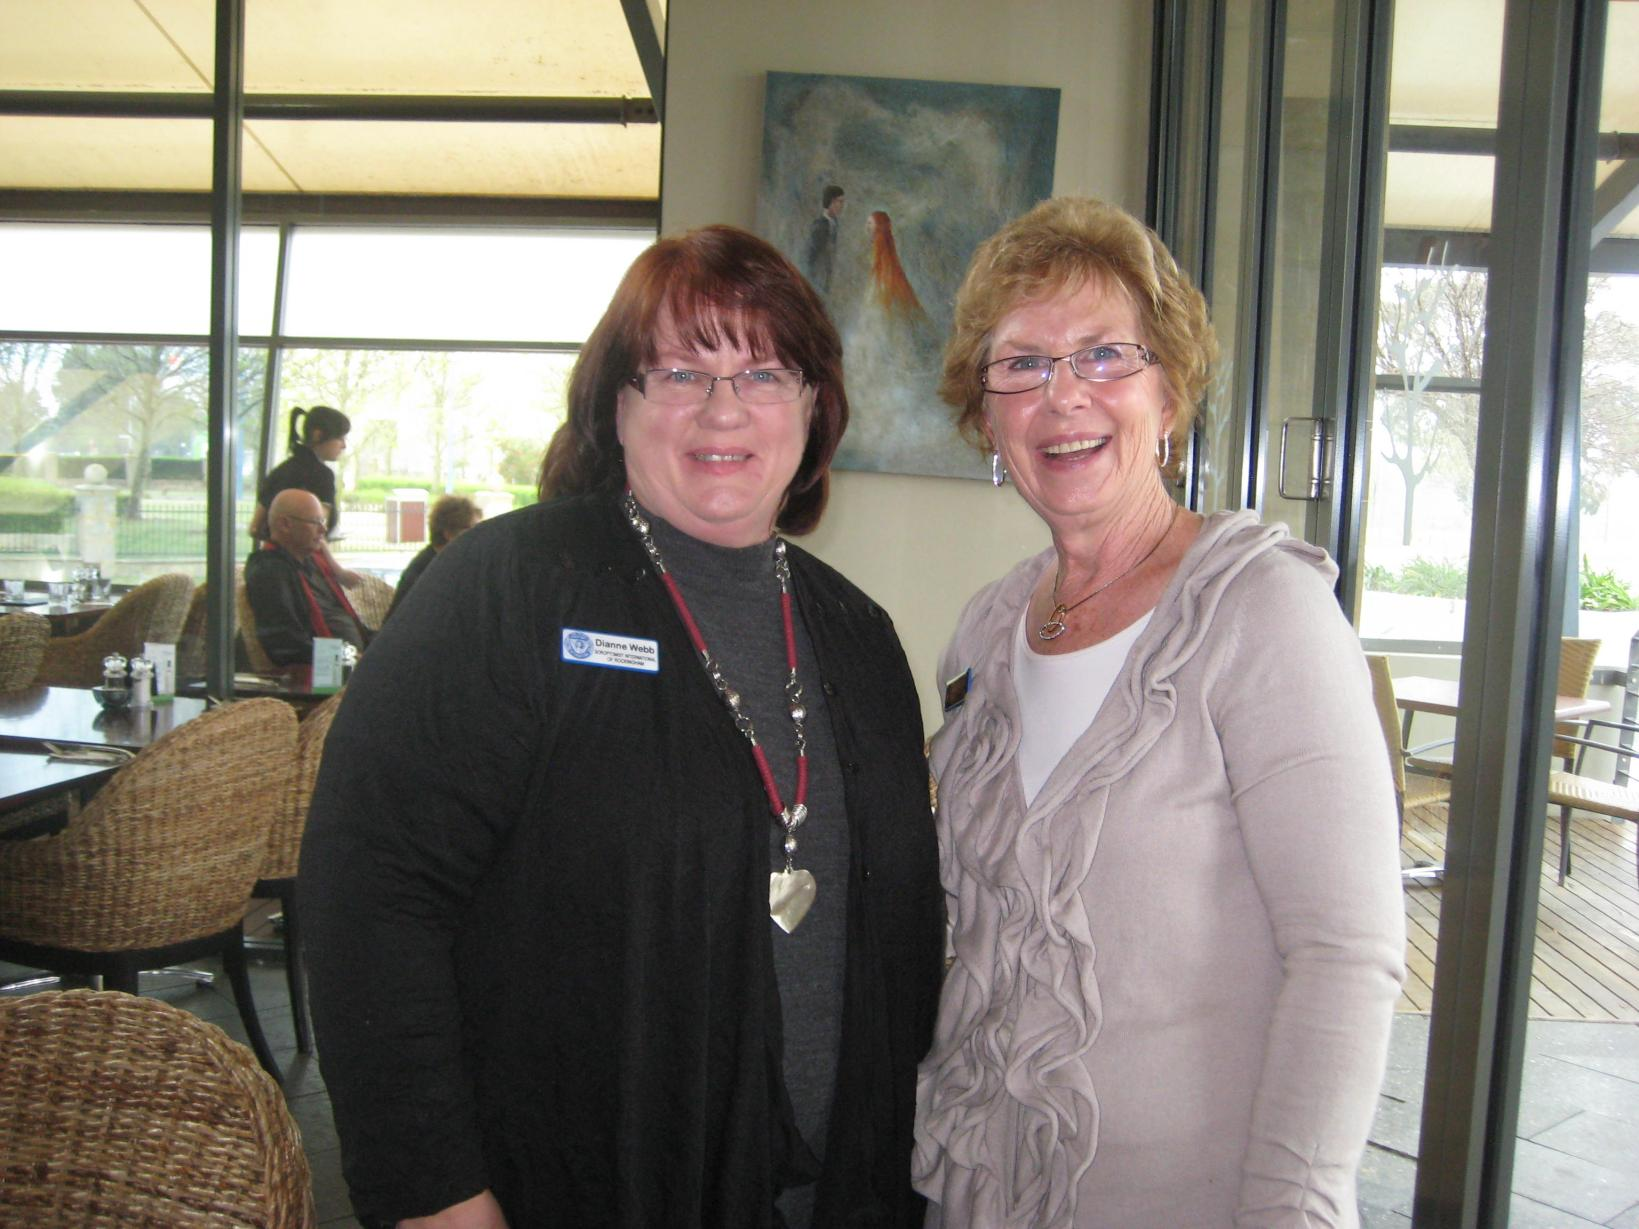 SIR Membership Officer Dianne Webb with SIR Publicity Officer, Jenny Norris